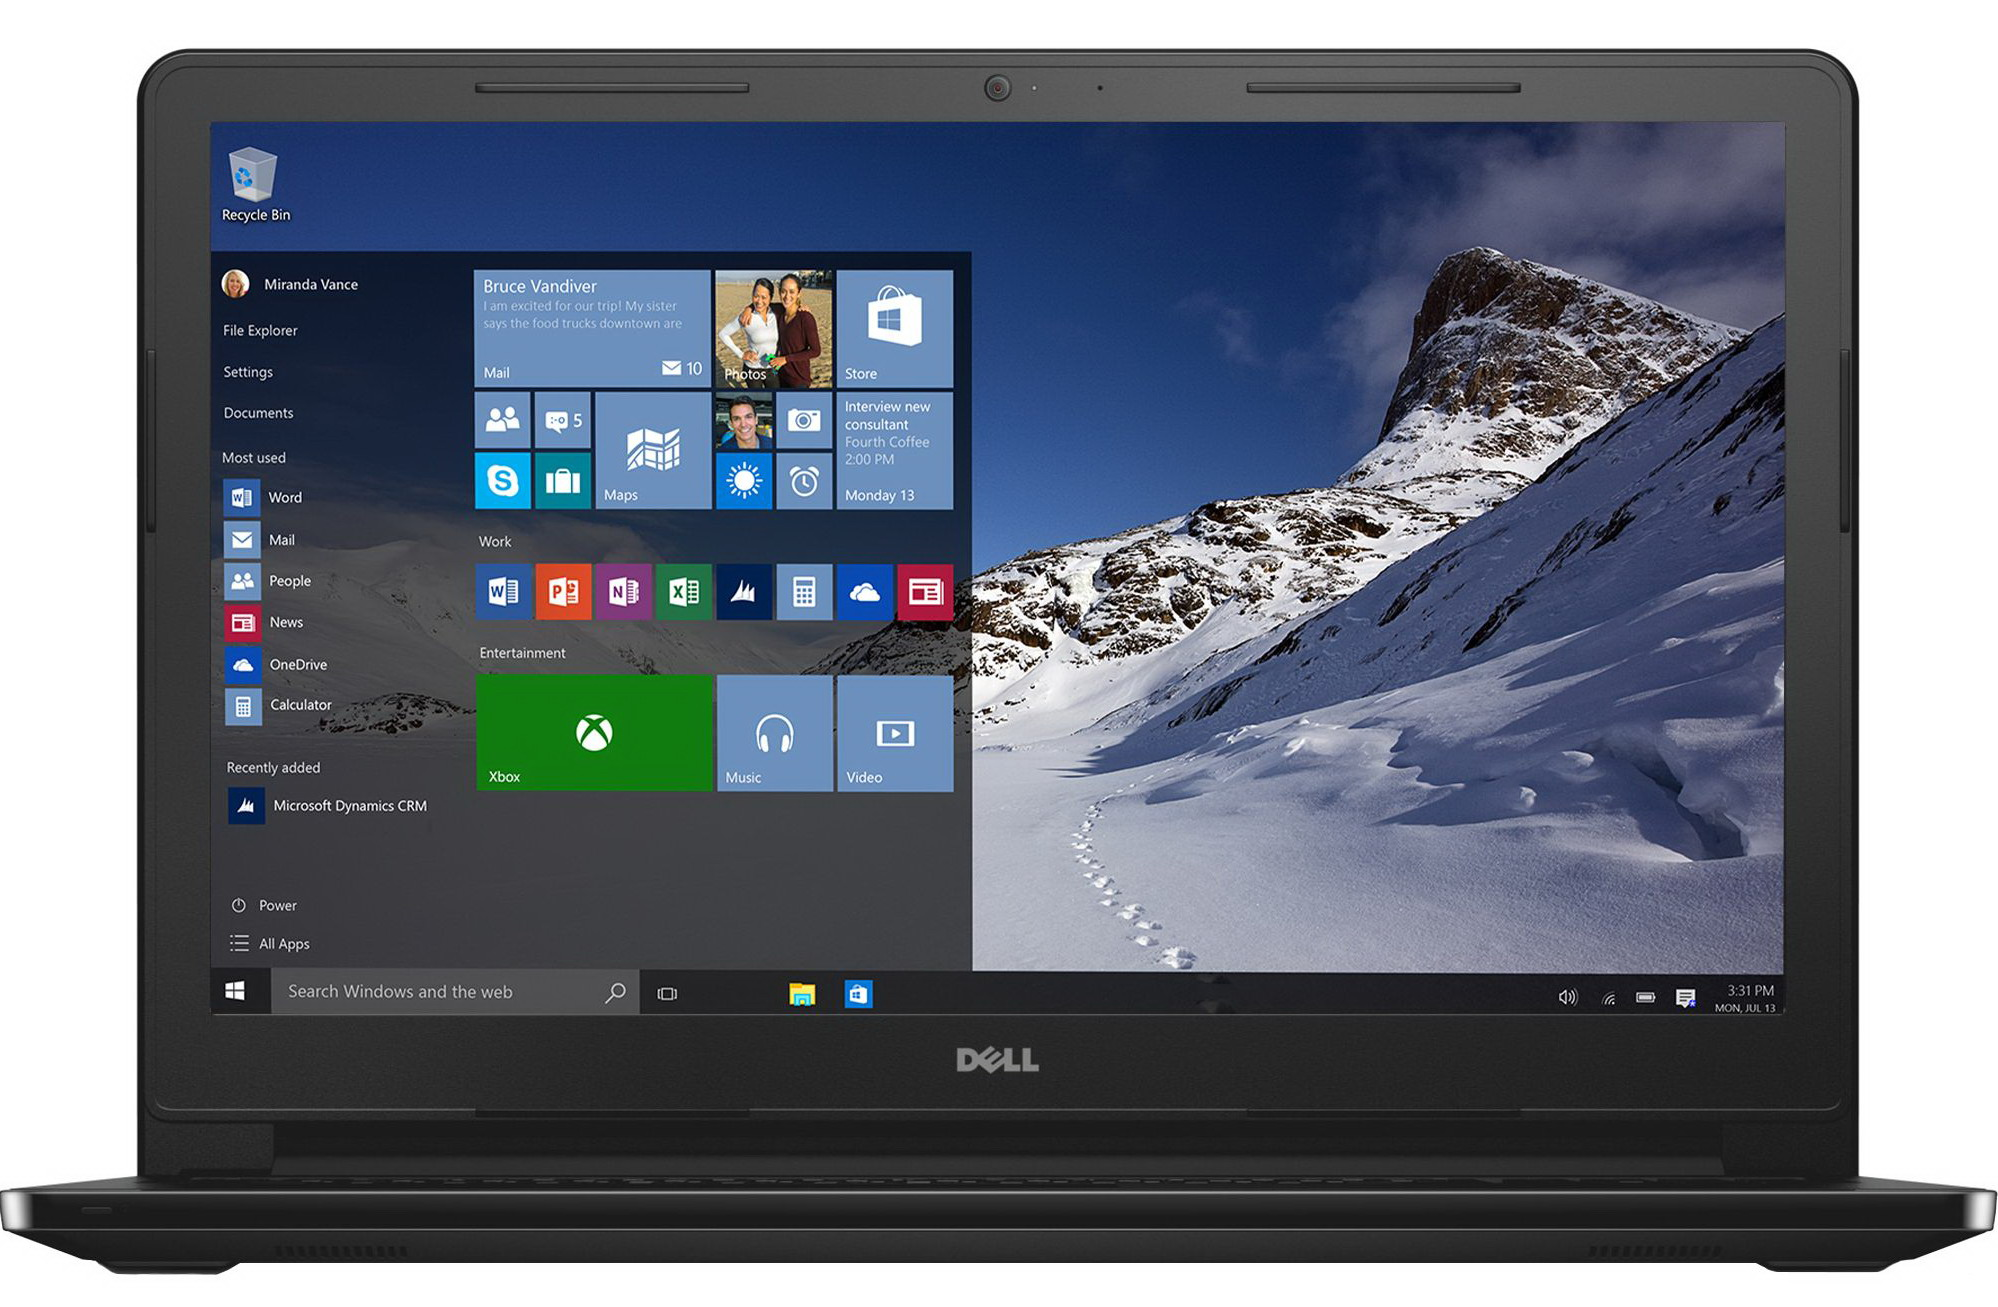 Dell Inspiron 15 3000 Series (Model 3552) Non-Touch 15-inch notebook computer. Features Braswell (BSW) processor.